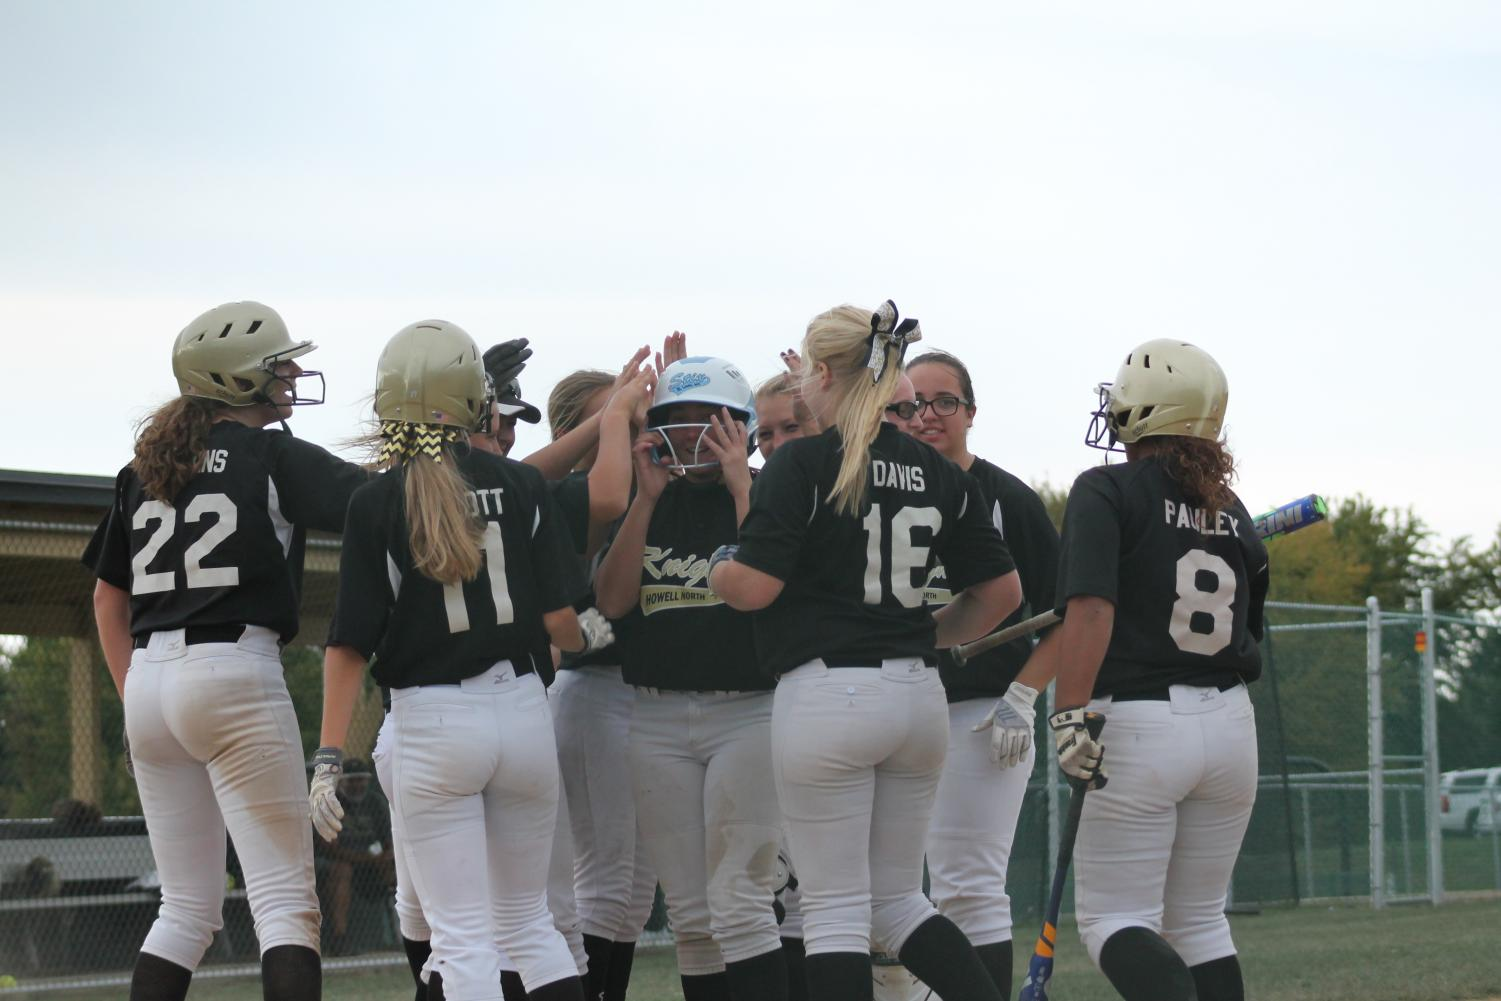 The Knights celebrate a home run vs. Troy on 9/12.